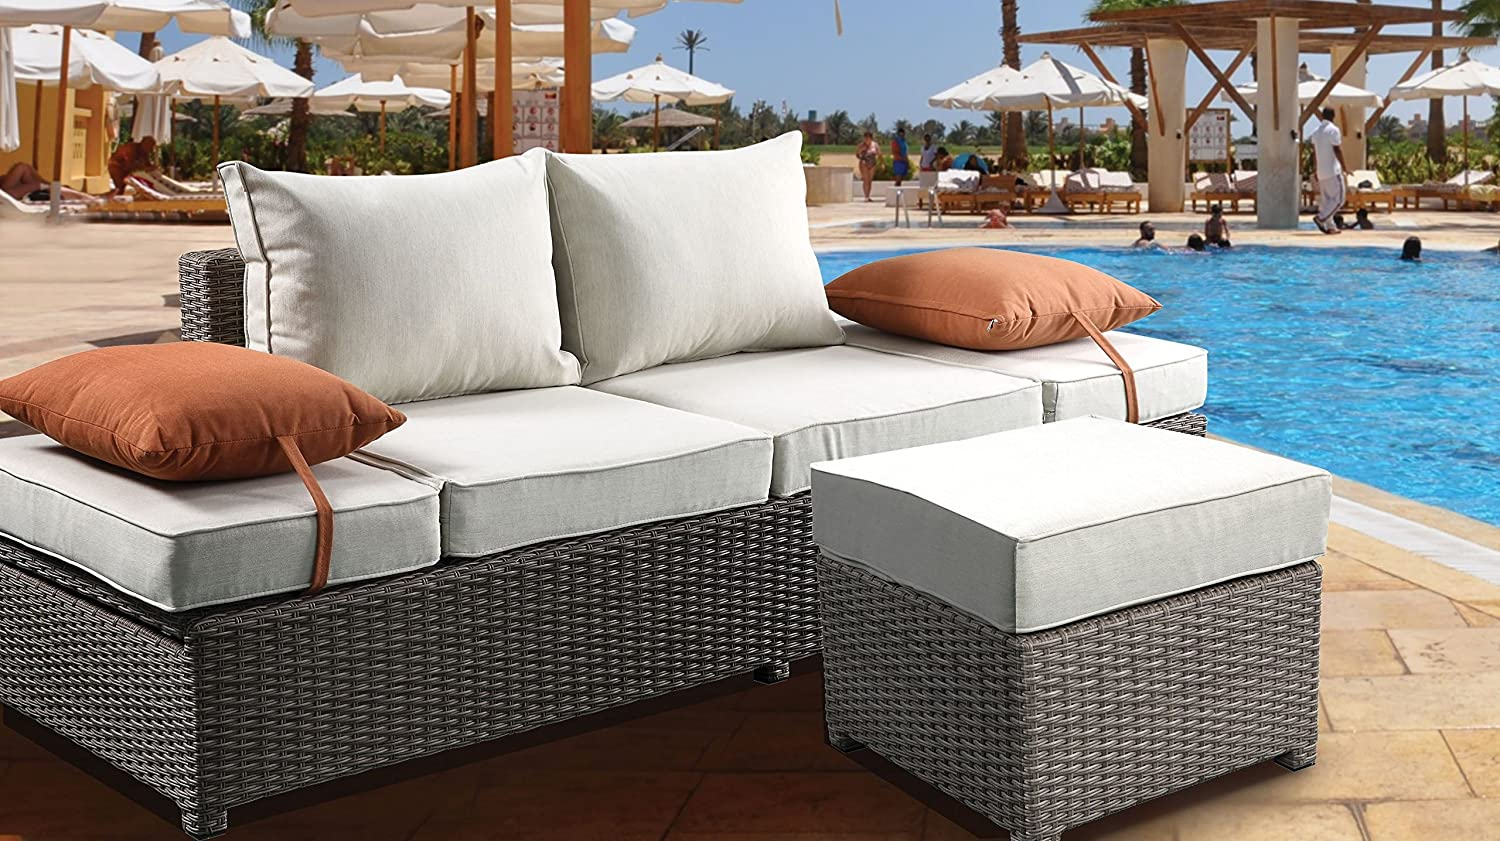 Major-Q Gray Beige Outdoor Patio Storage Max 54% OFF Cheap mail order sales with 2 Sofa Ottoman and